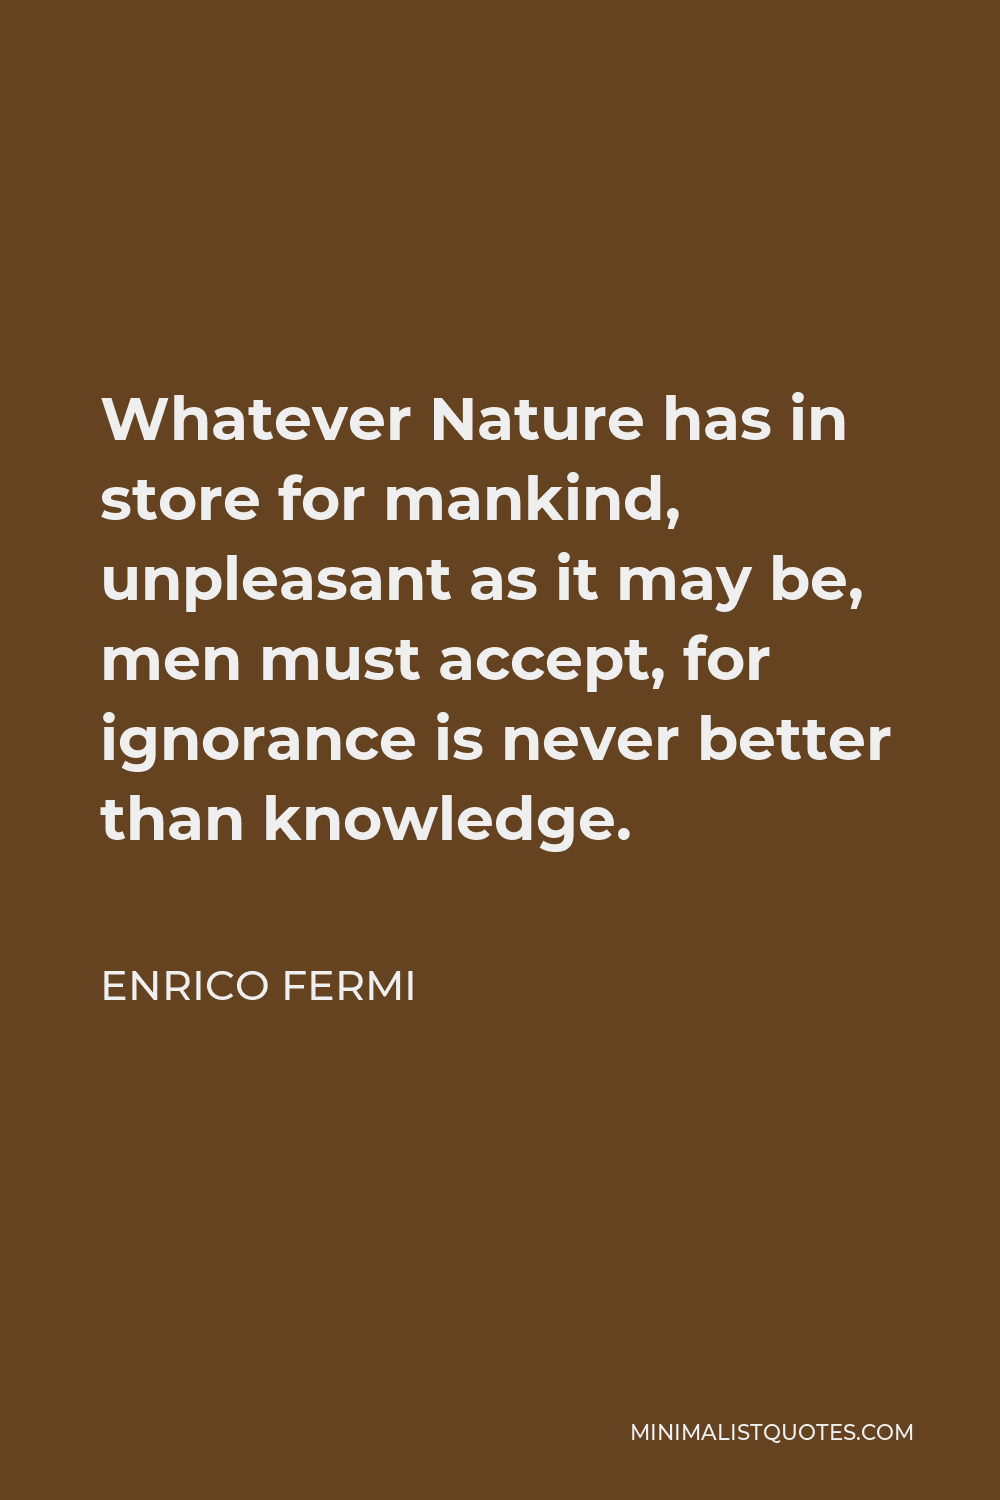 Enrico Fermi Quote - Whatever Nature has in store for mankind, unpleasant as it may be, men must accept, for ignorance is never better than knowledge.